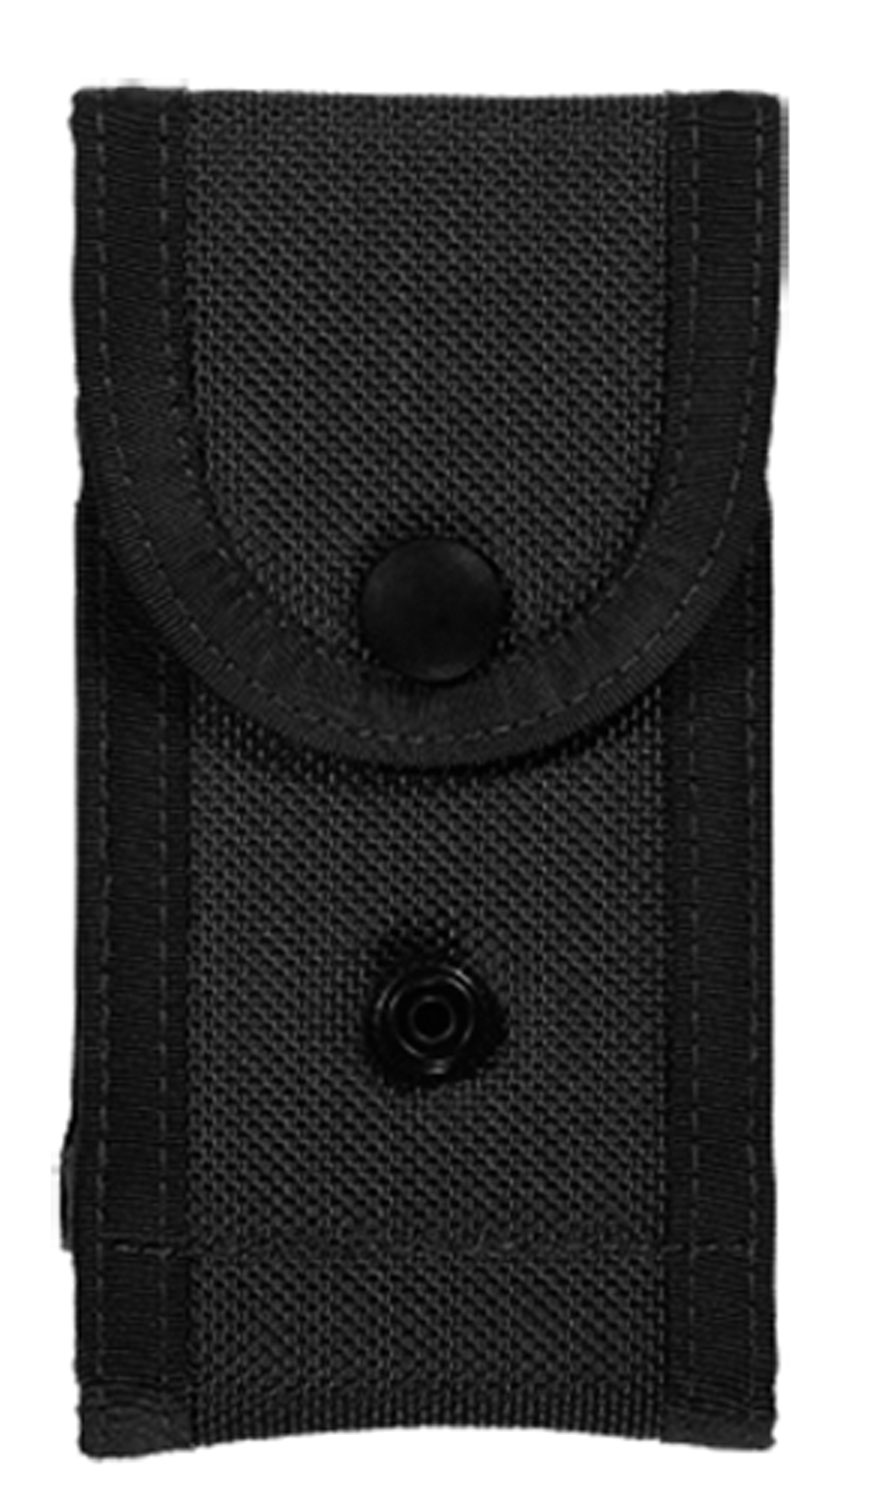 Bianchi 17645 Military MAG Pouch M1025 Fits 2.25″ Belts Black Accumold Trilamina